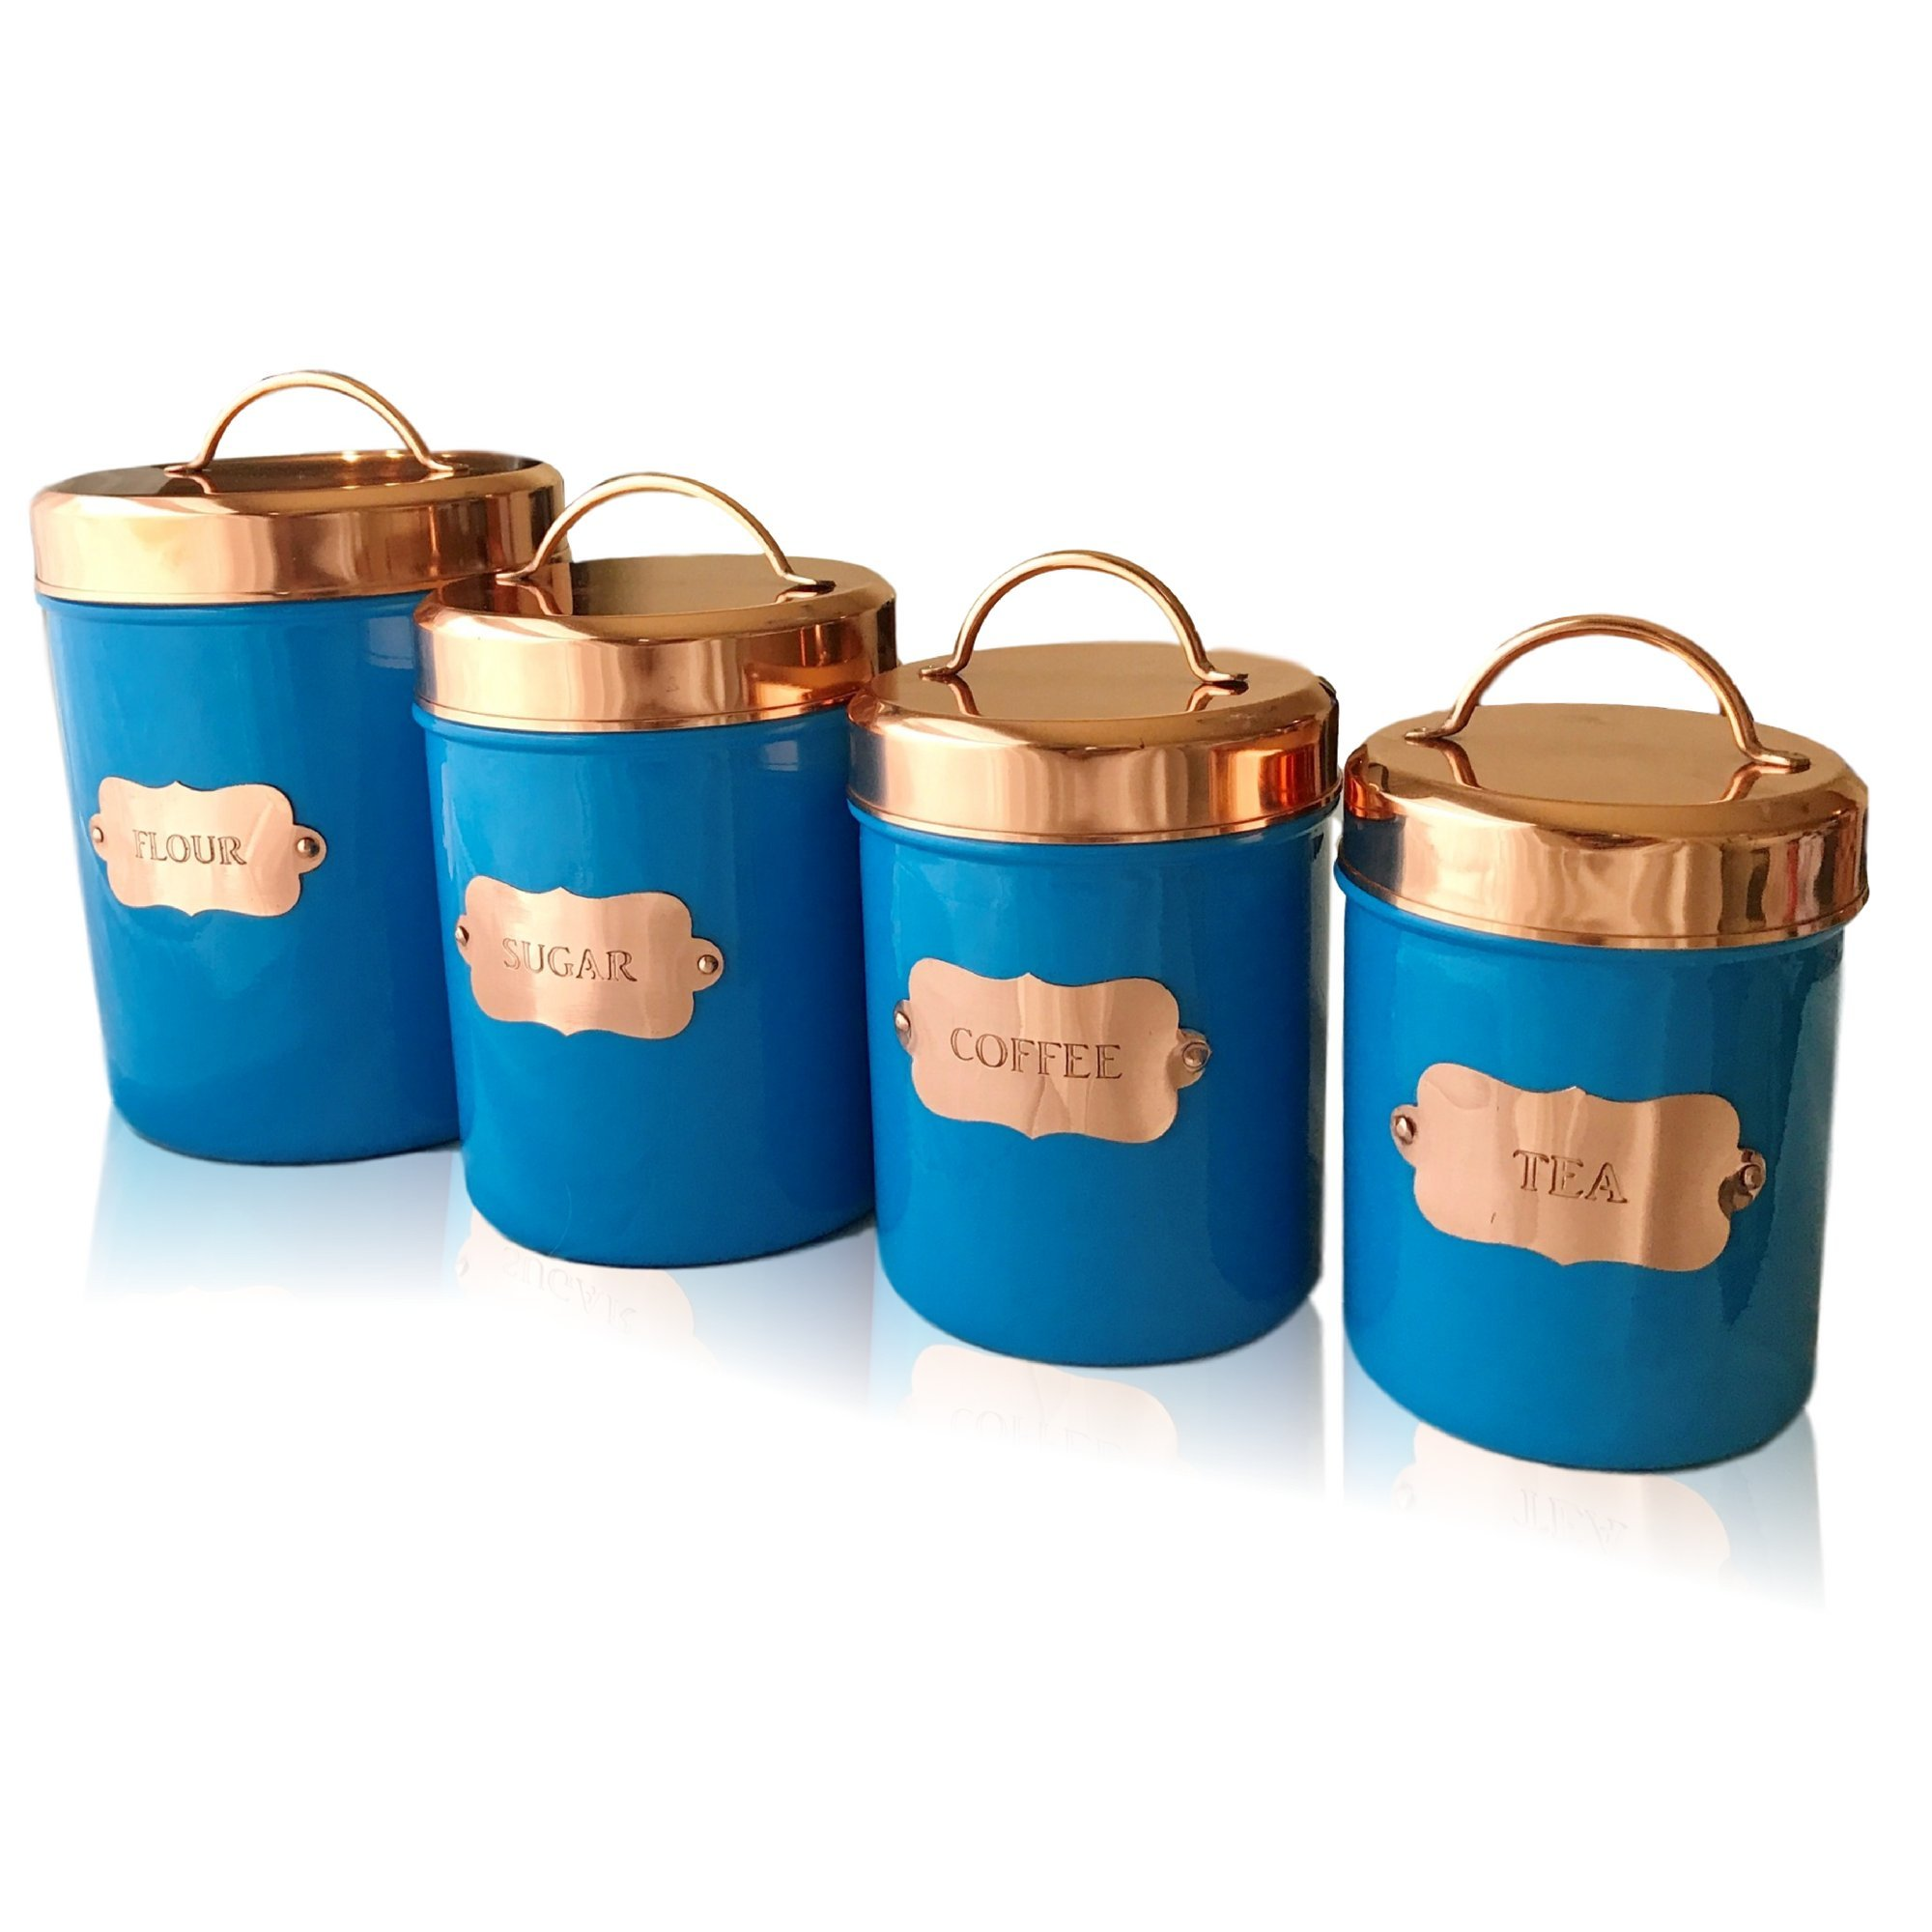 Get Quotations · Kauri Copper Kitchen Food Canister Sets By Design |  Decorative Food Storage Jars With Lids |